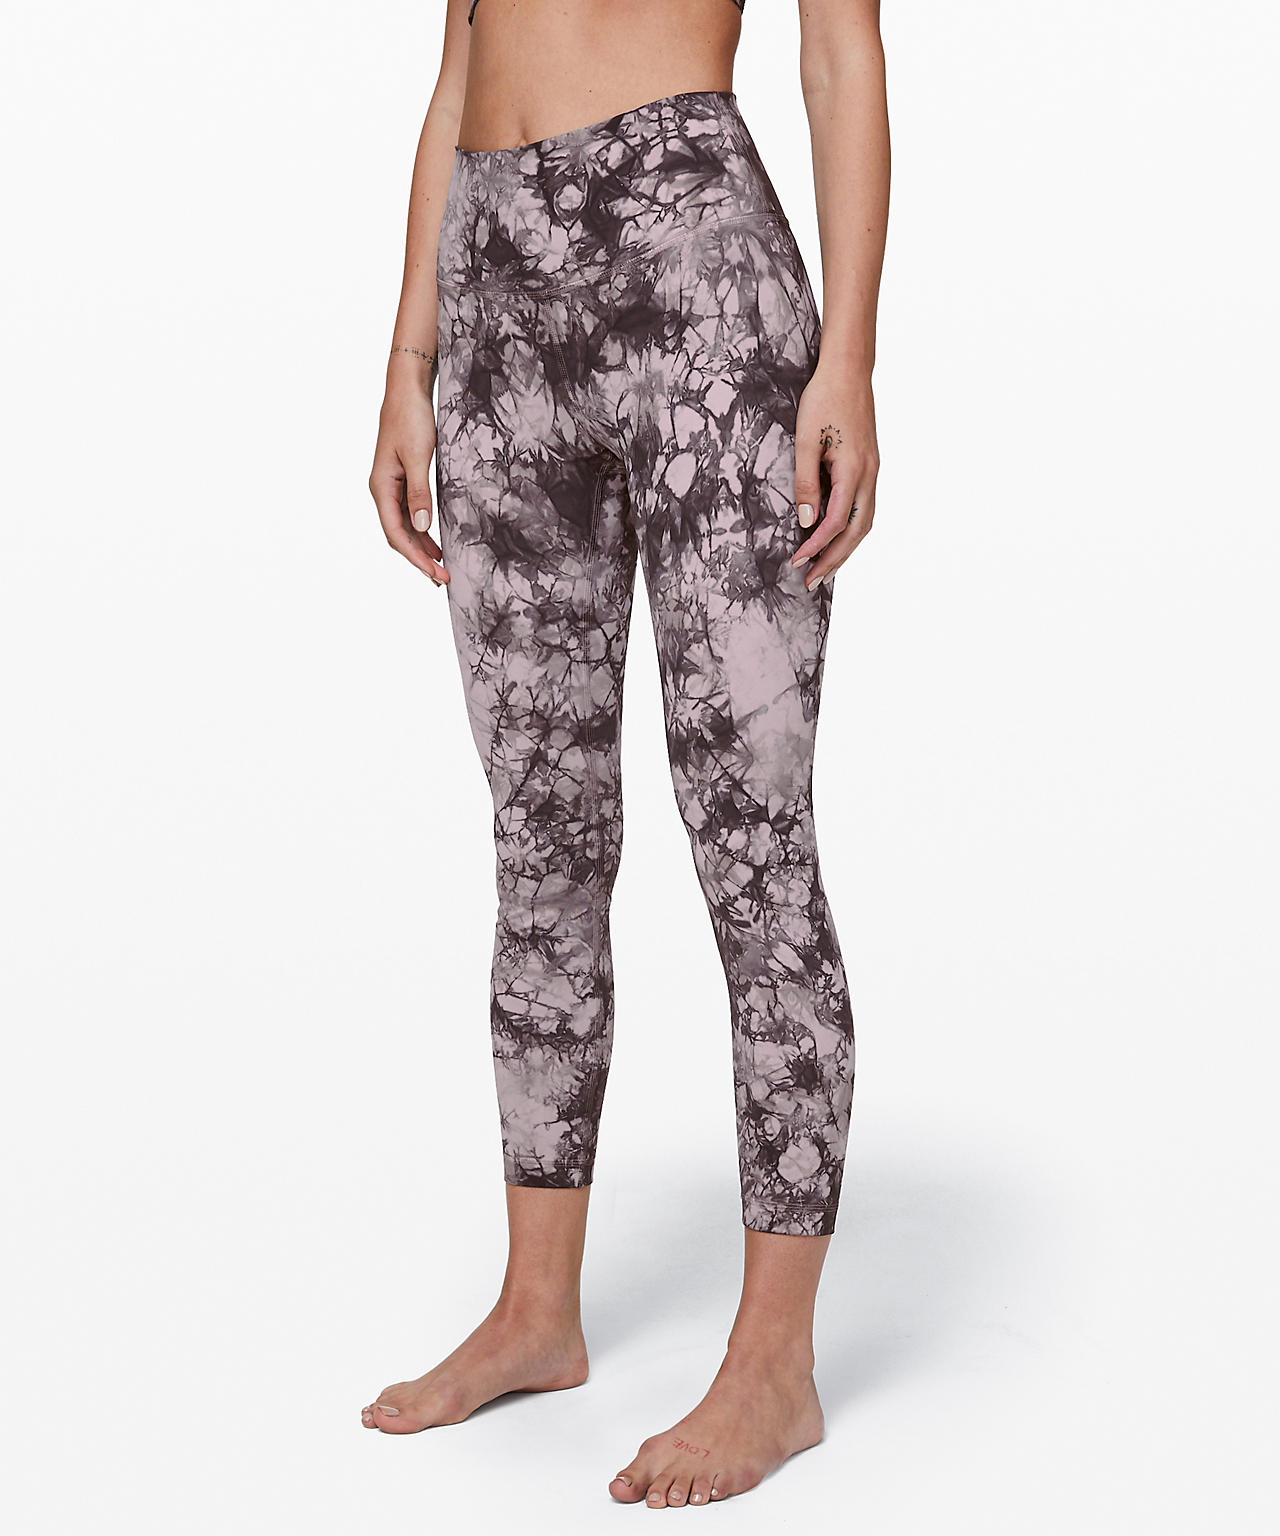 Wunder Under High Rise Tight, Shibori Iris, lululemon upload